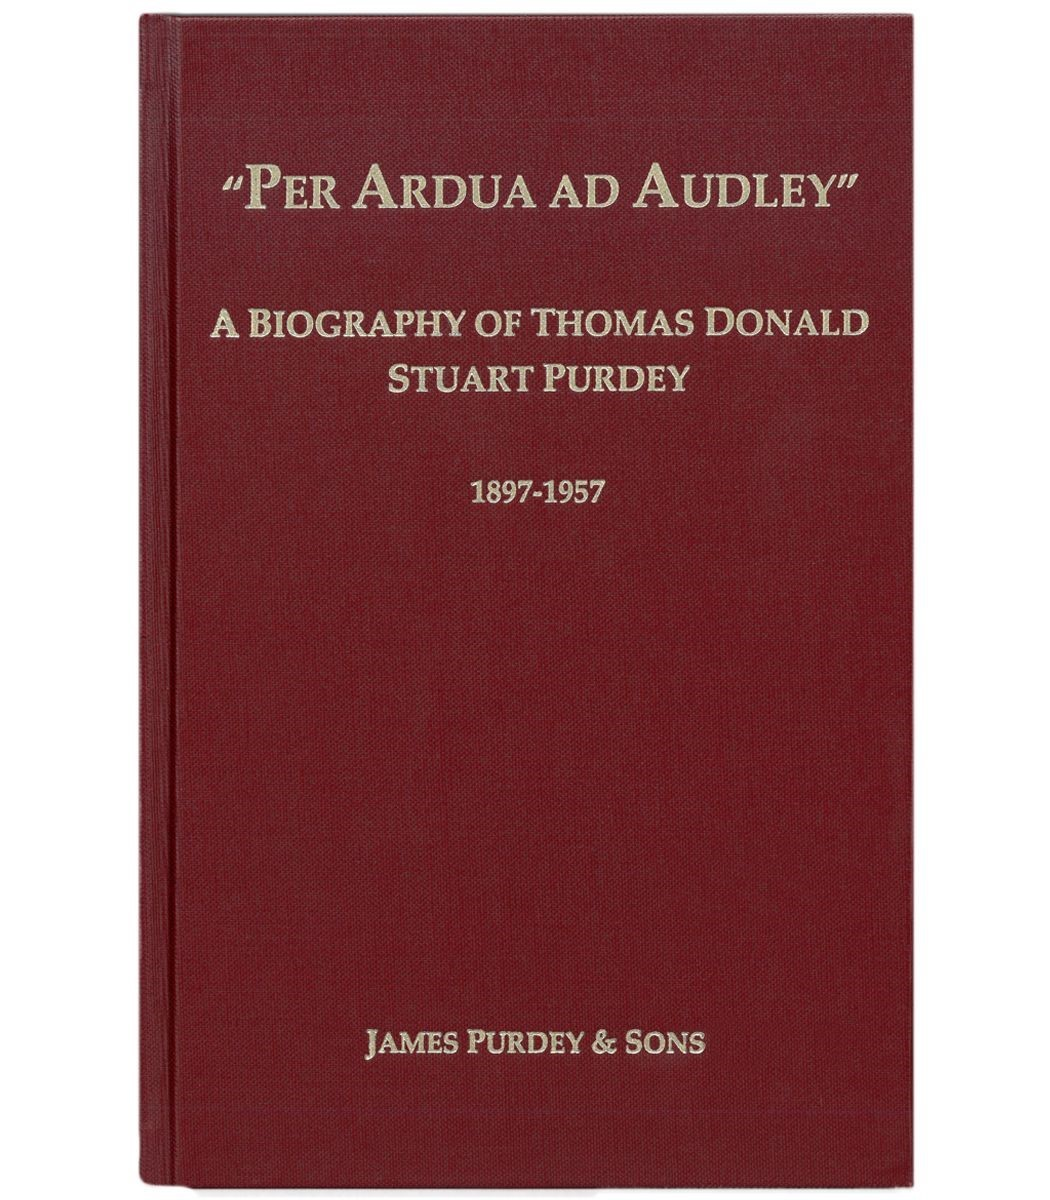 "Image for ""PER ARDUA AD AUDLEY"" - A BIOGRAPHY OF THOMNAS DONALD STUART PURDEY 1897-1957,"